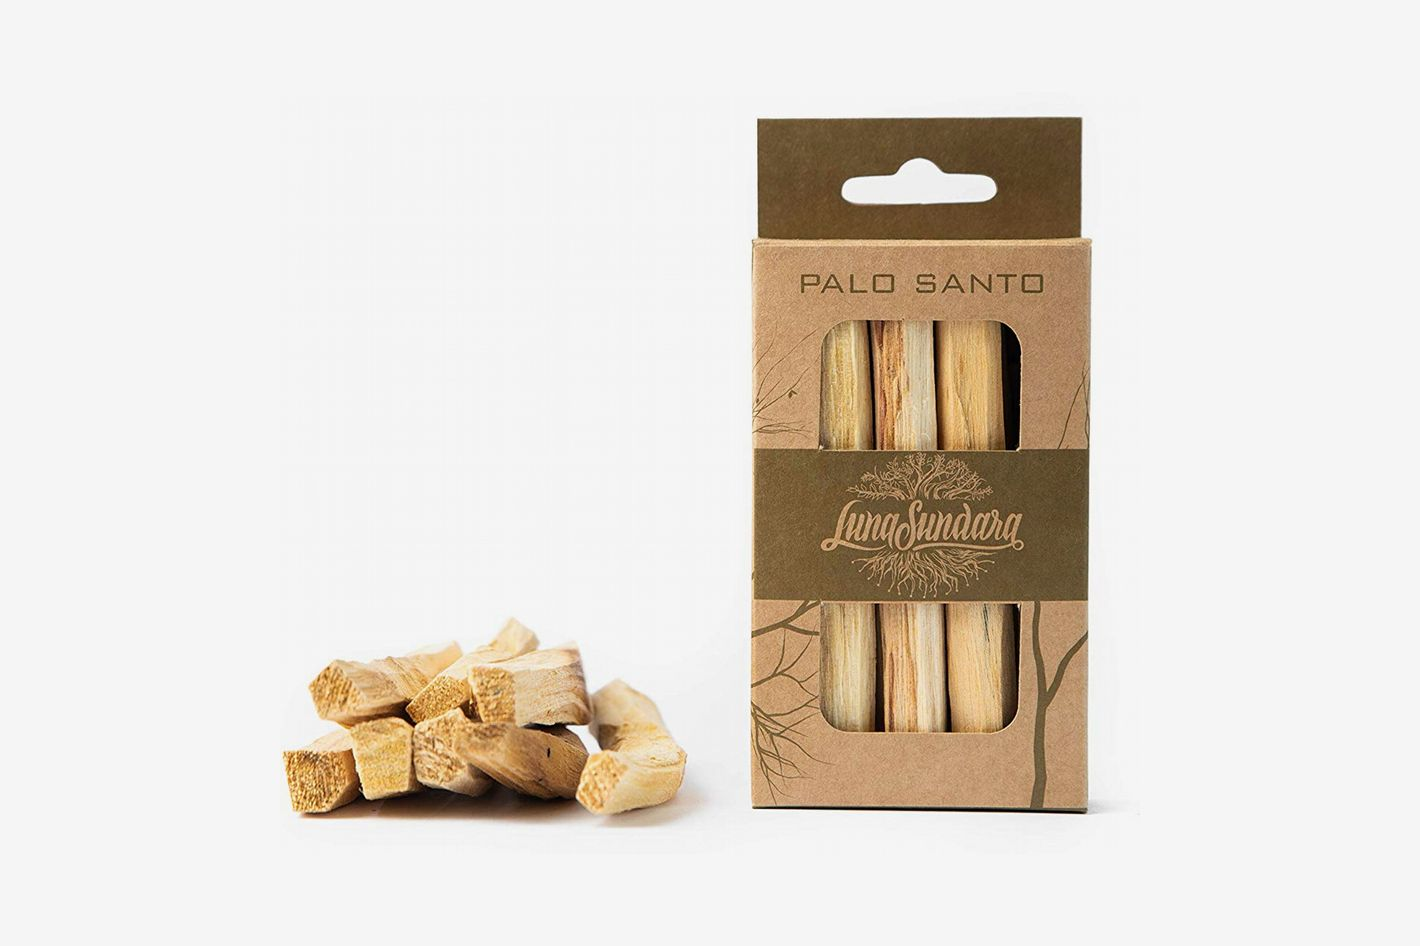 Luna Sundara Palo Santo Smudging Sticks At Amazon